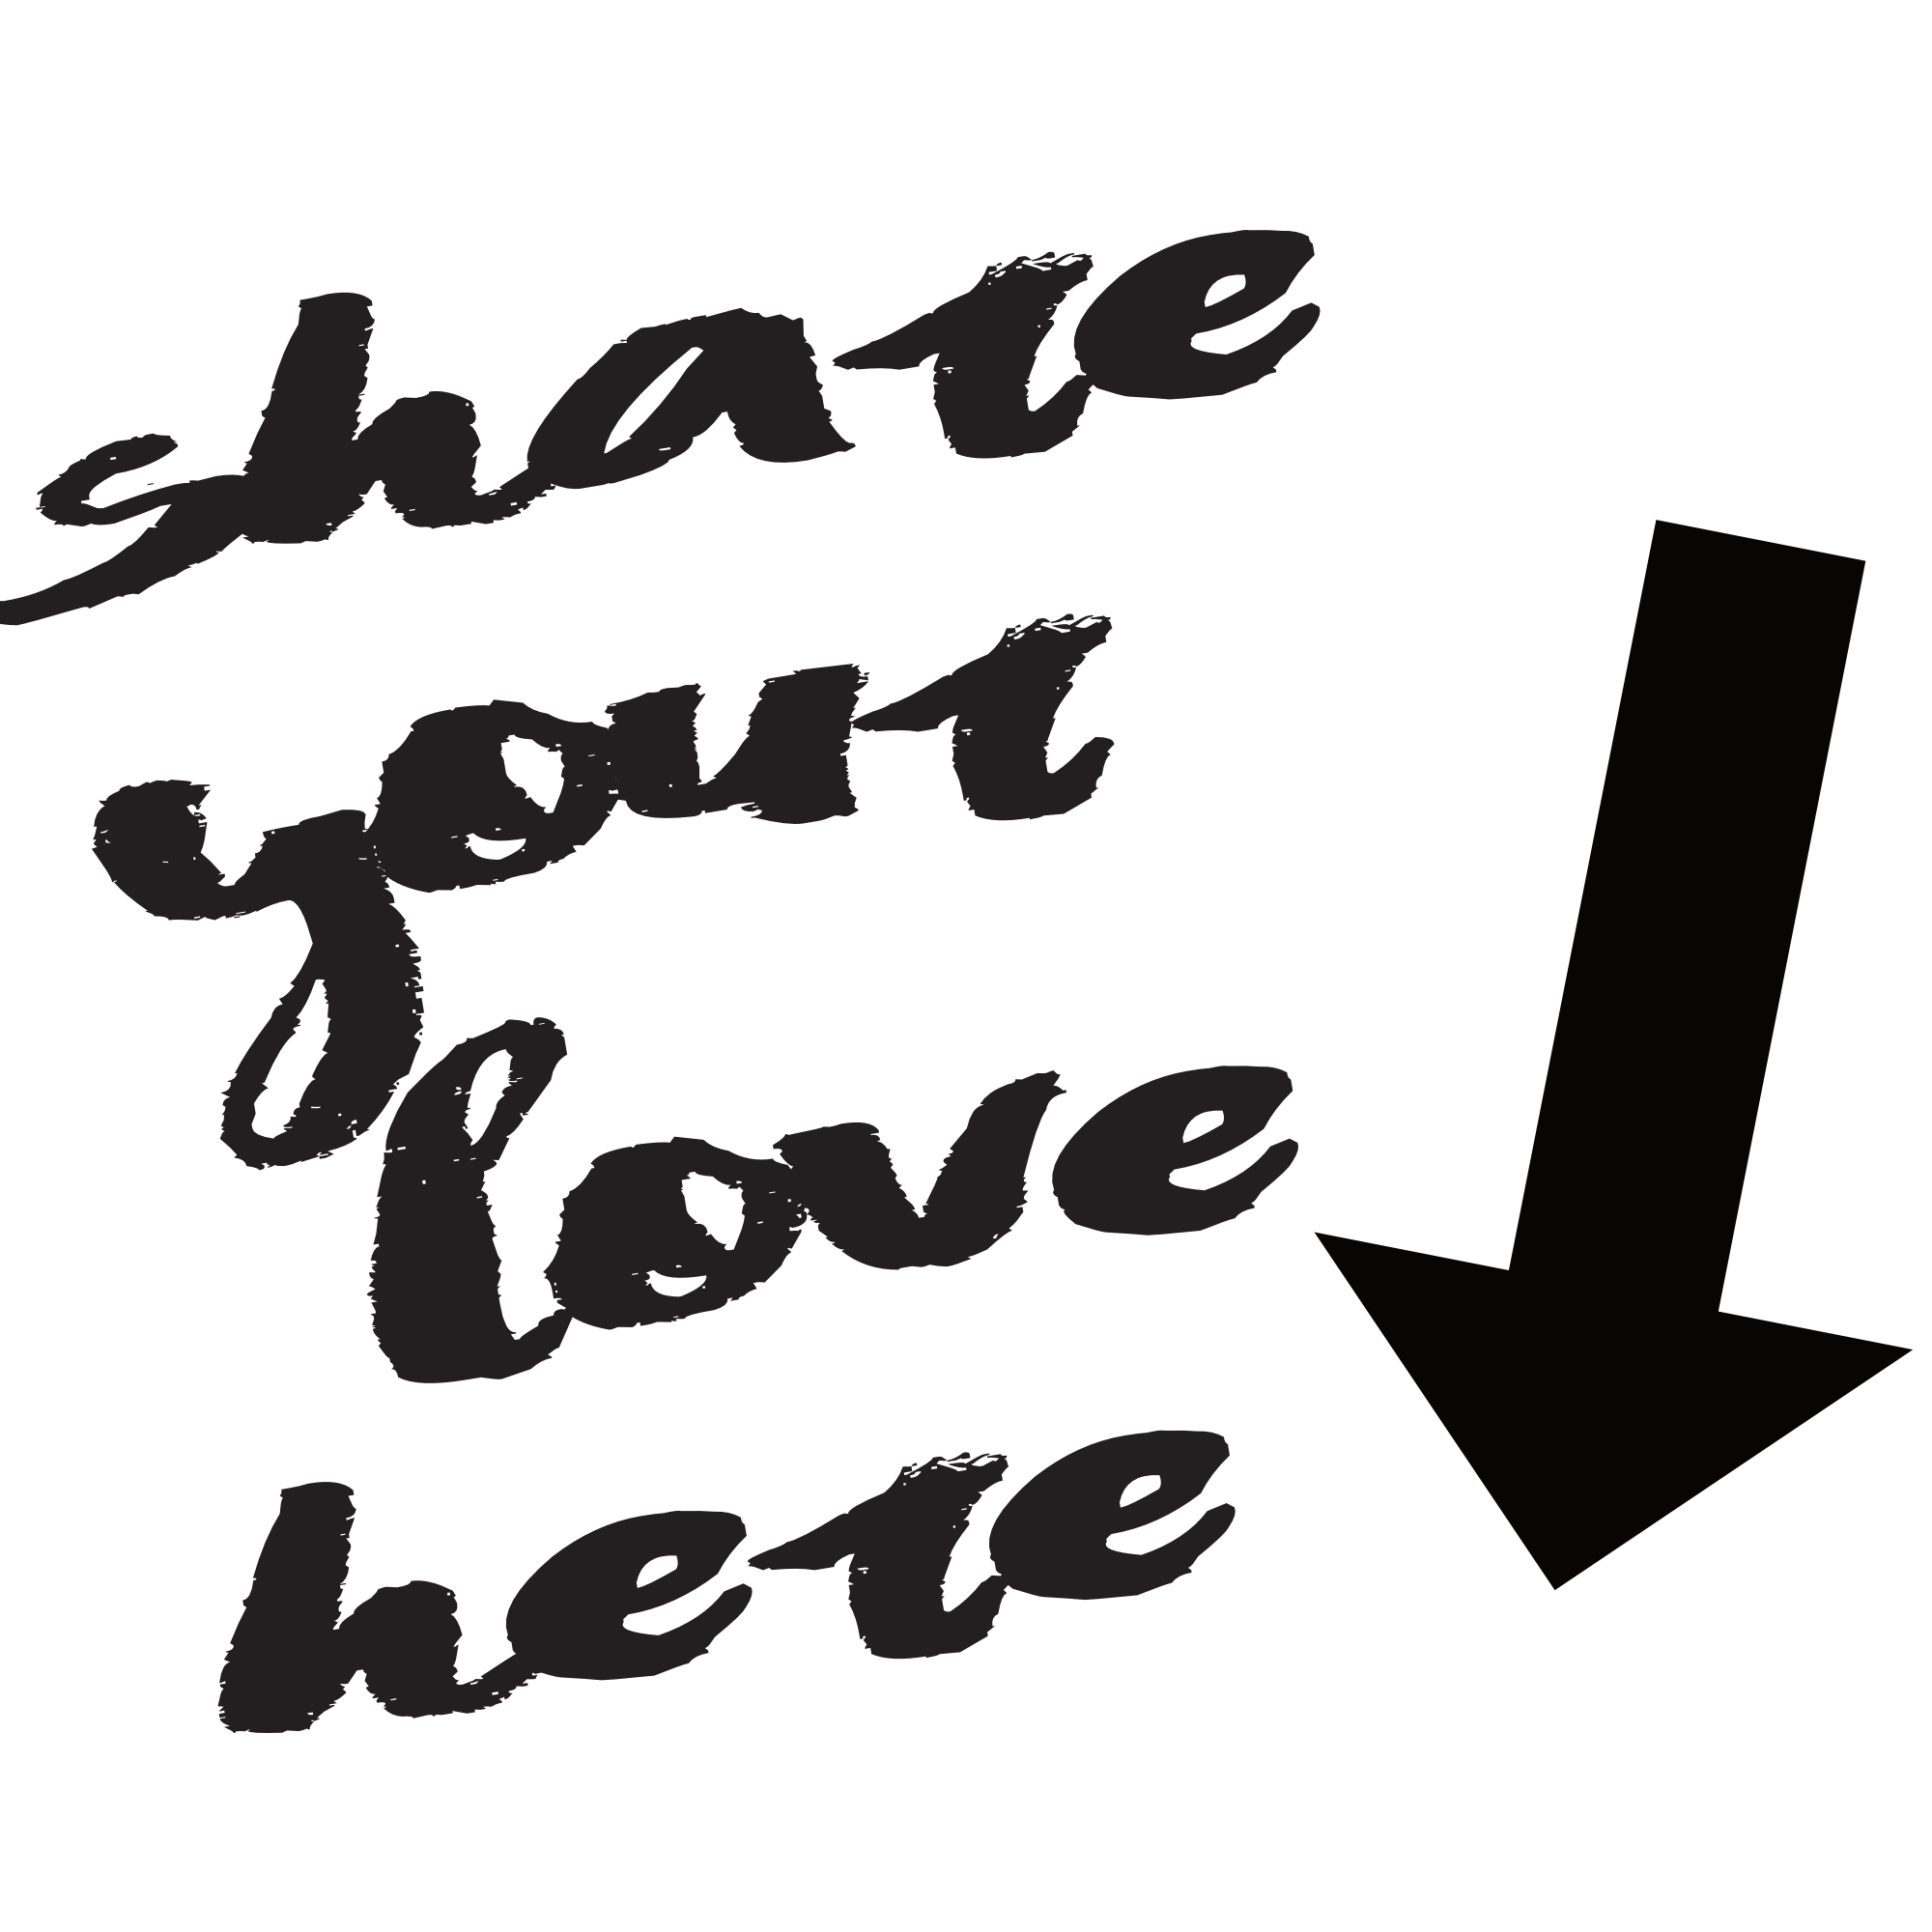 share your love here (downward arrow)